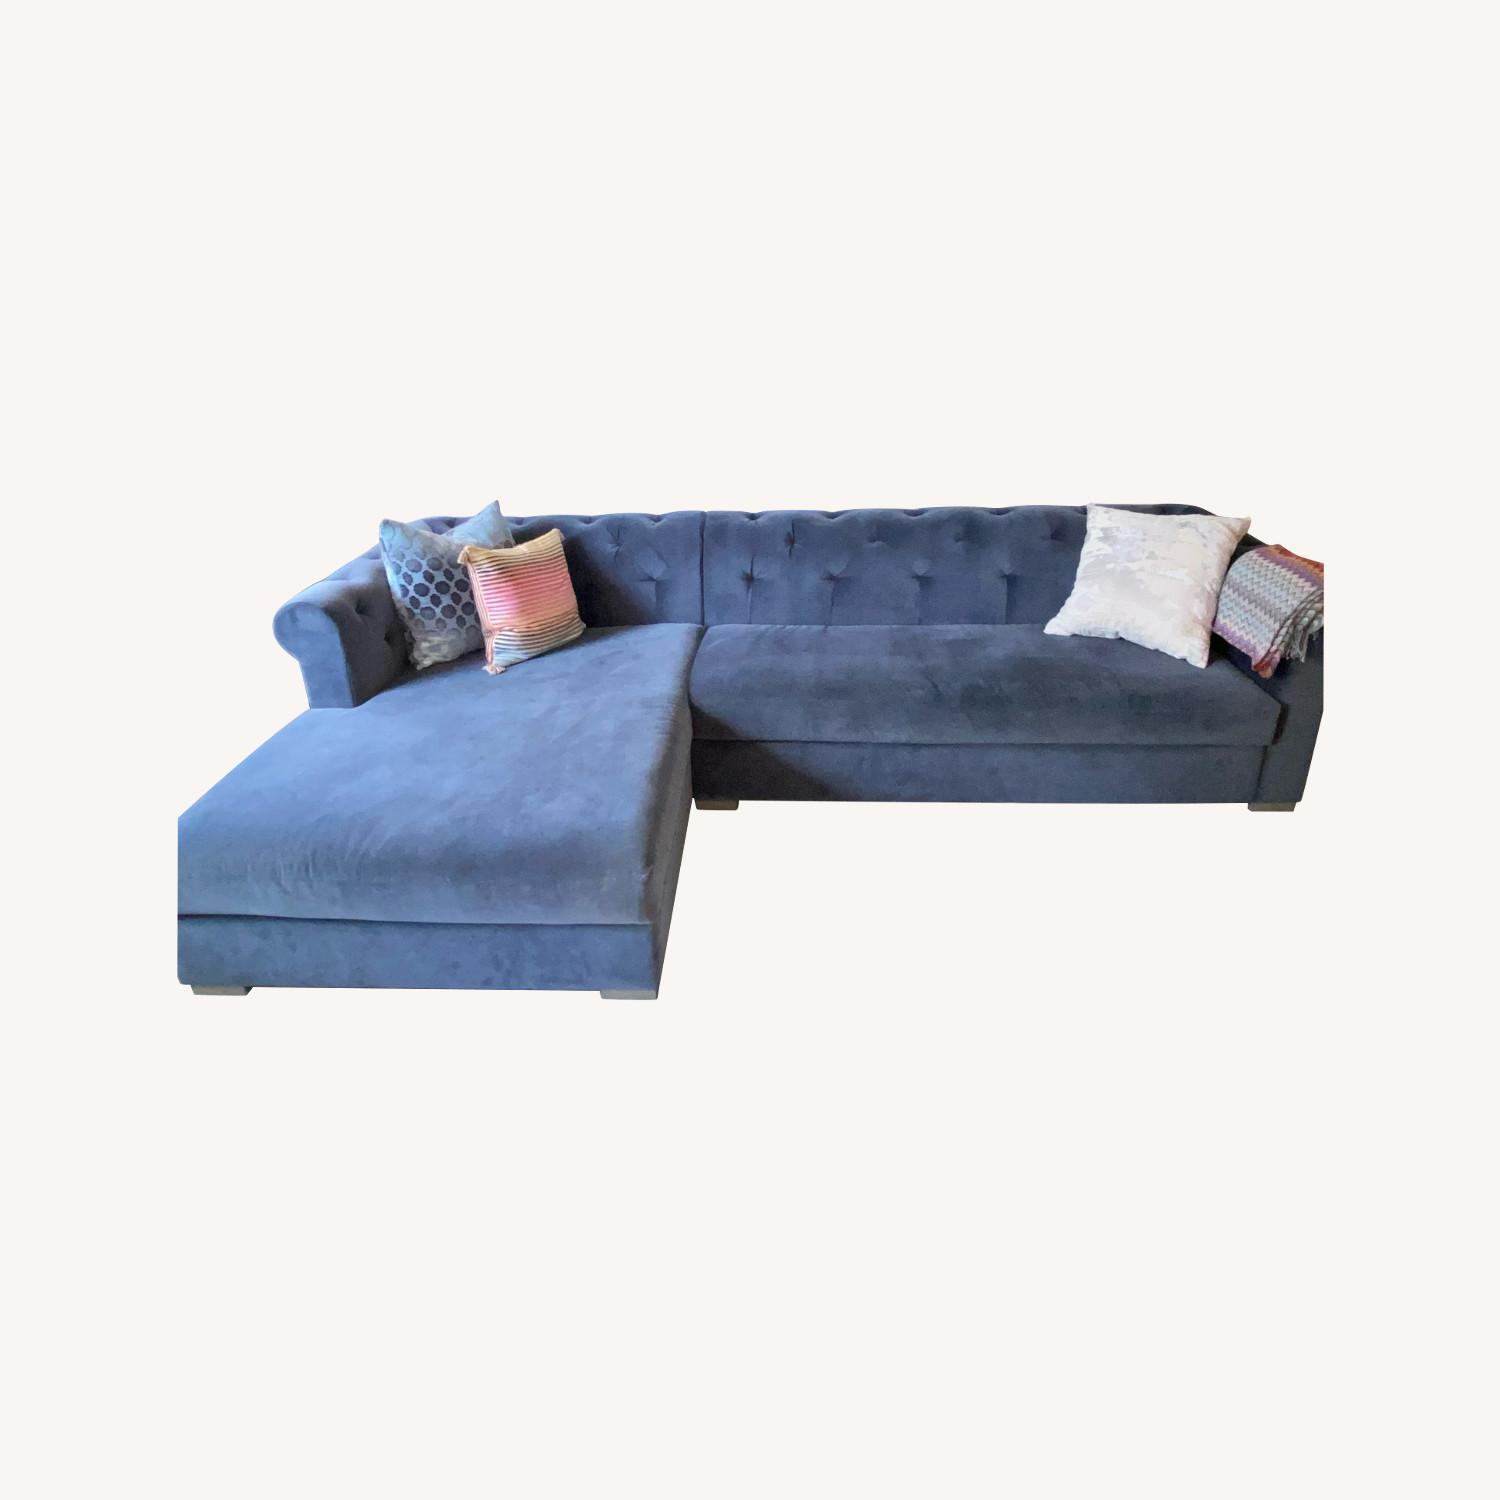 Restoration Hardware Sectional Couch - image-0